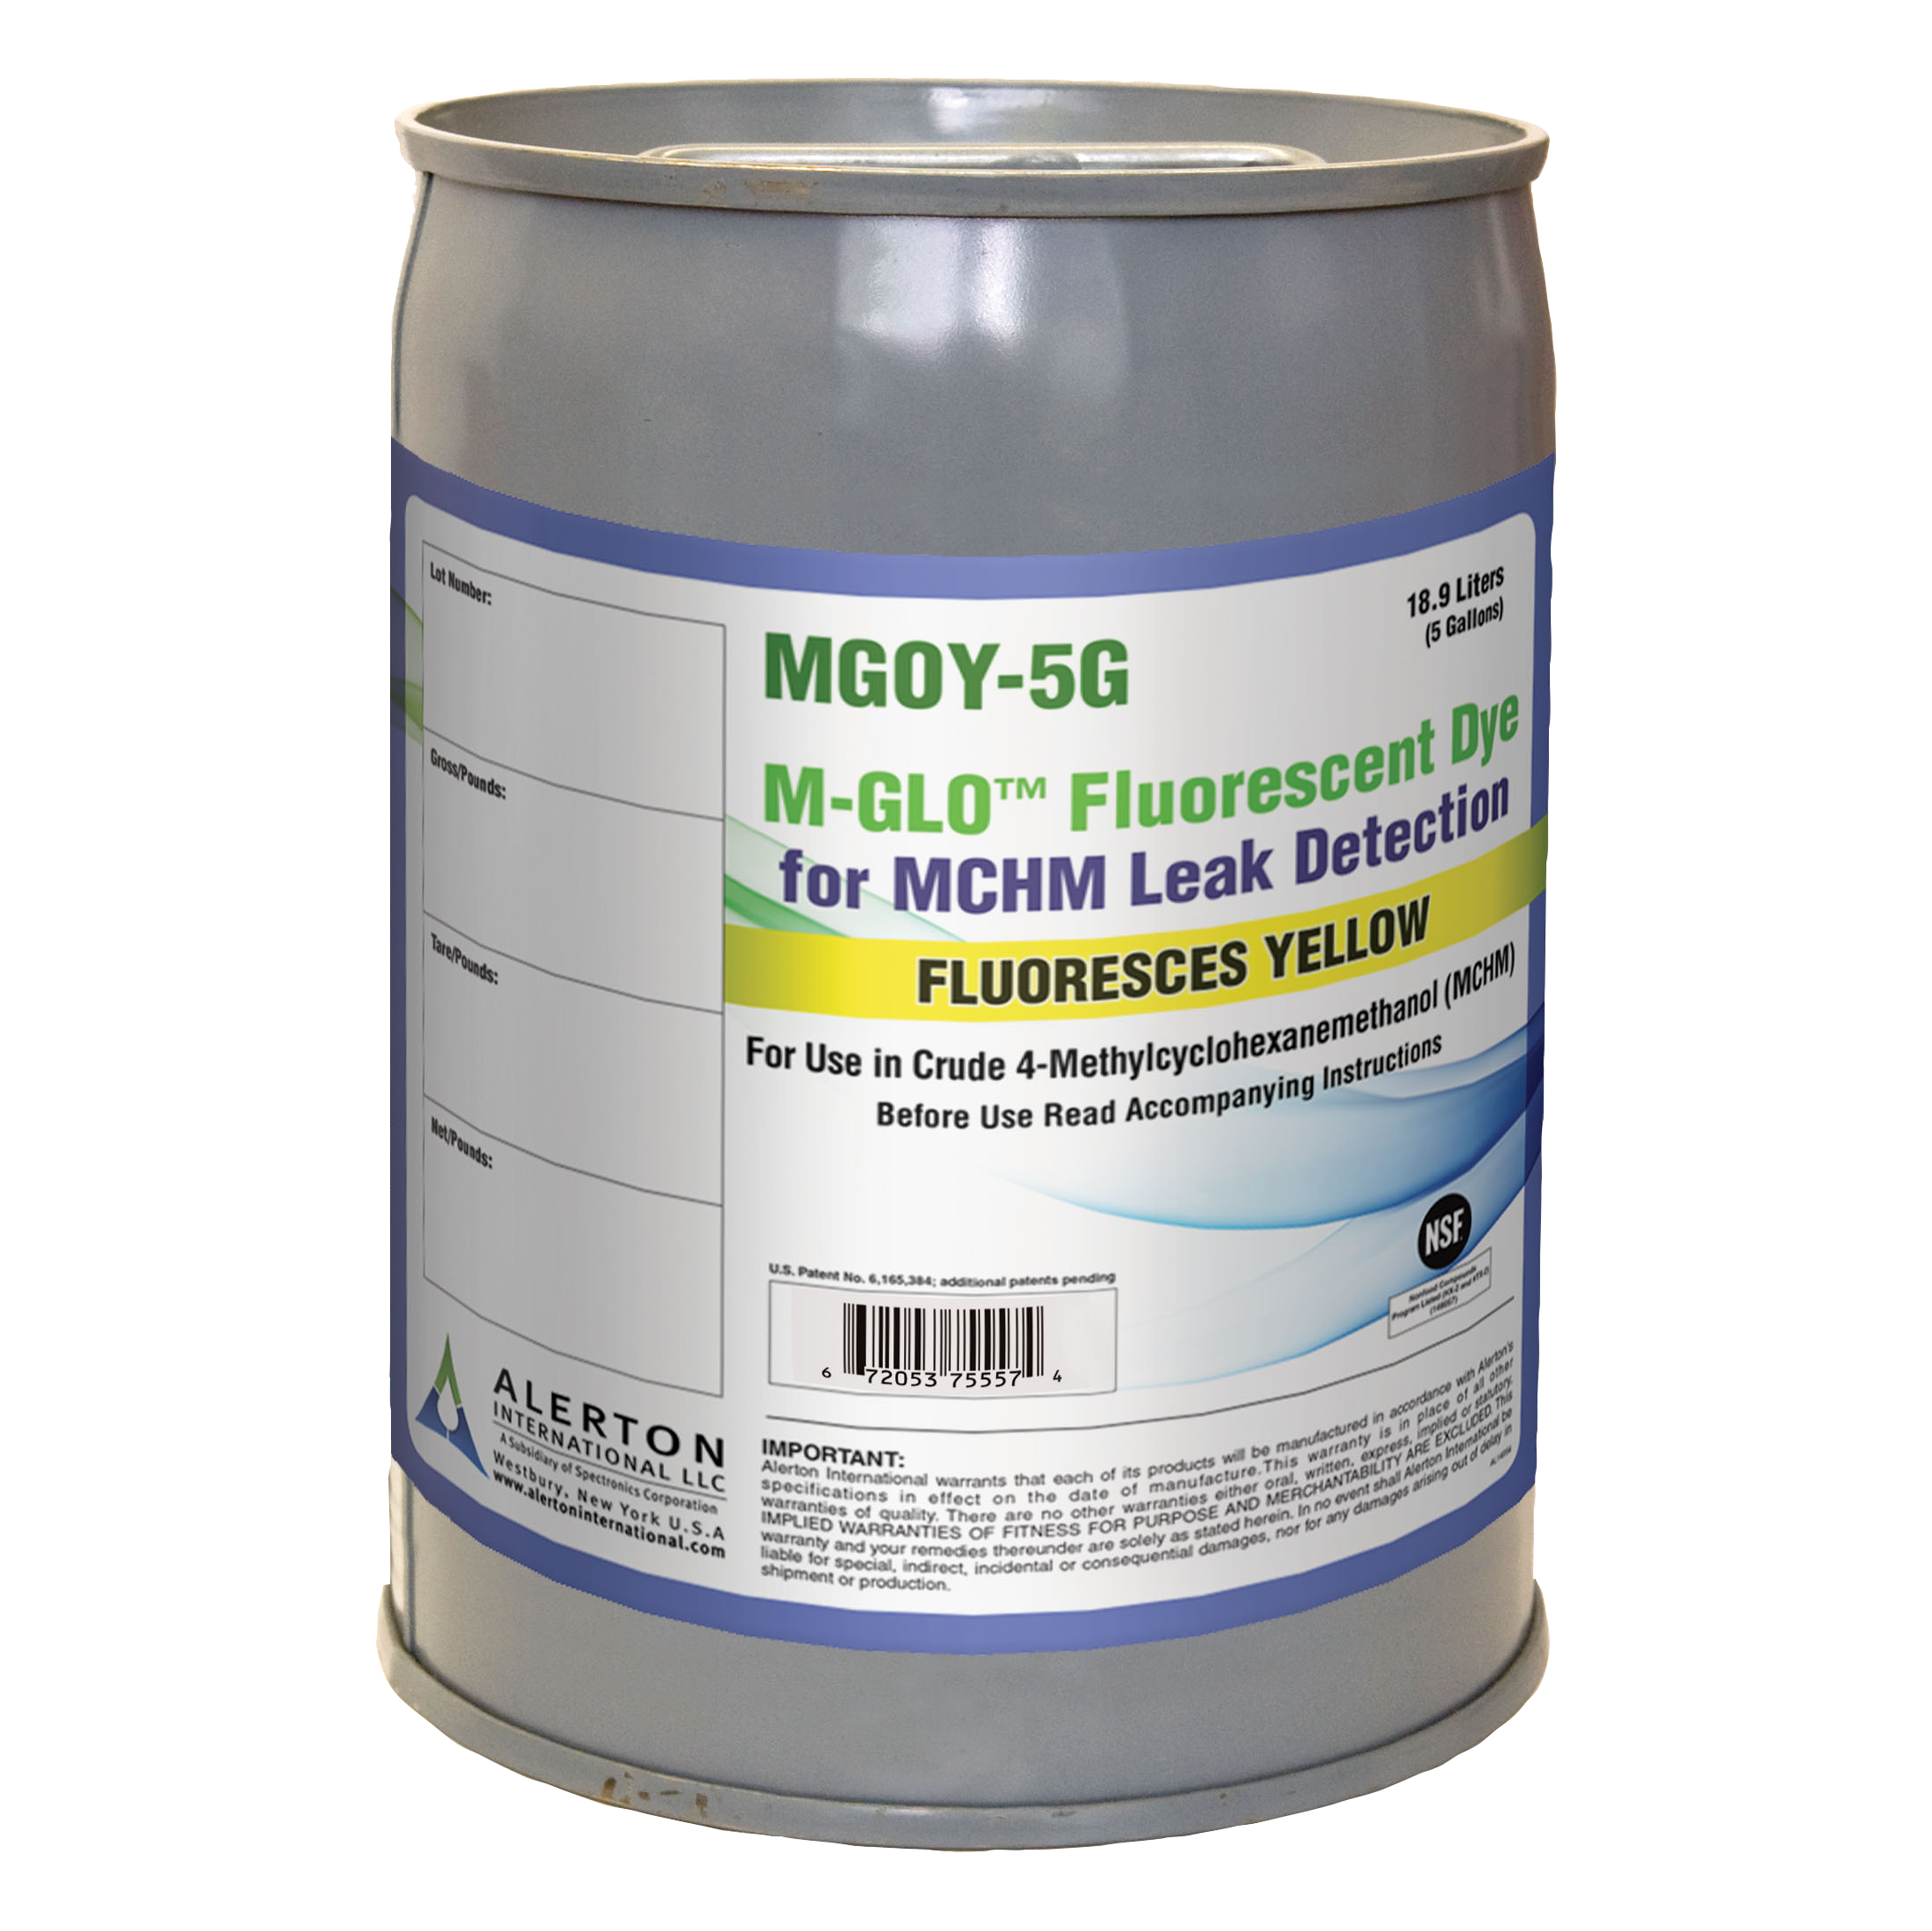 M-GLO™ Fluorescent Leak Detection Dye